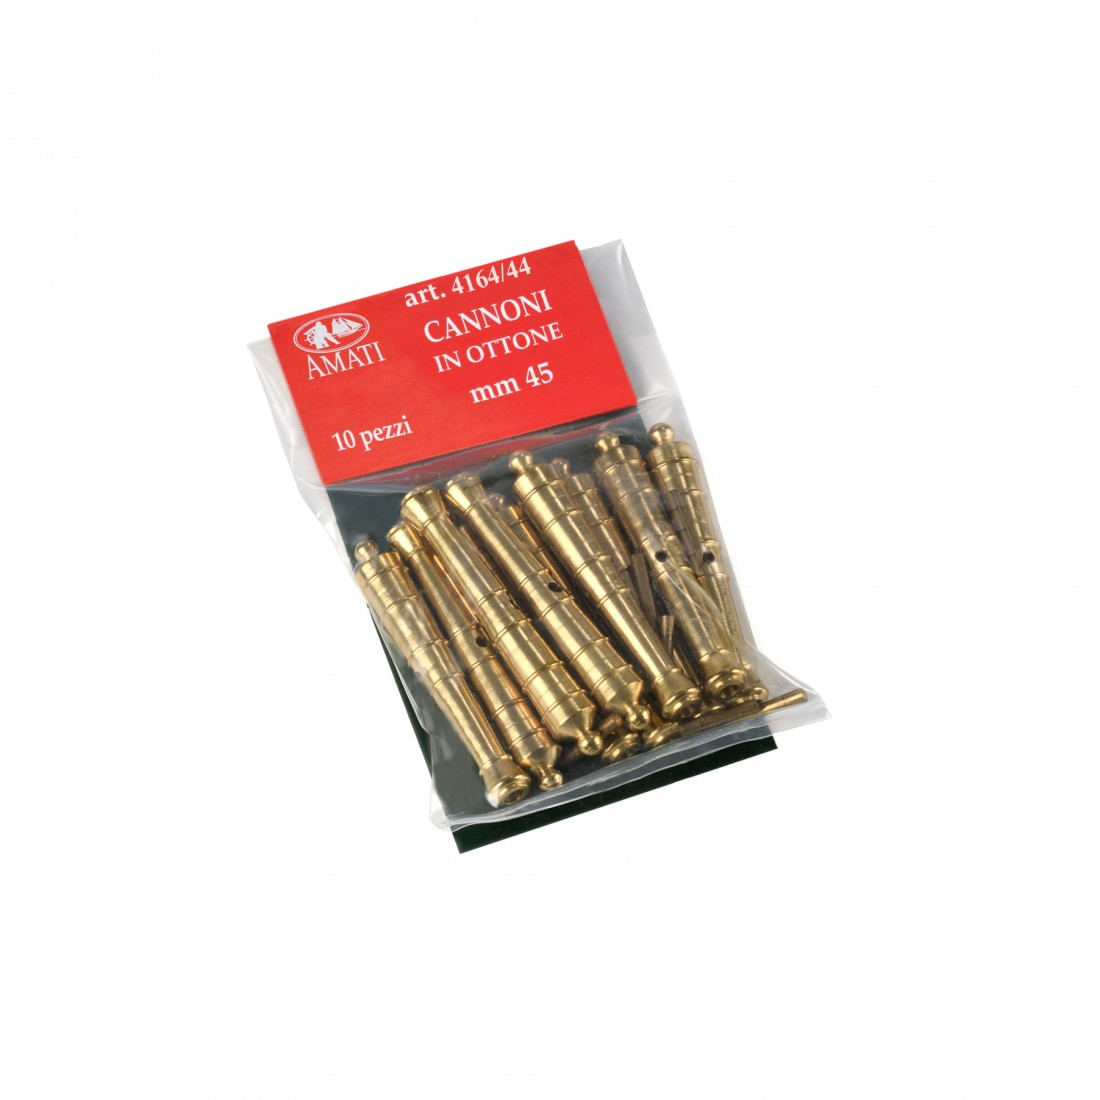 Tubes canons mm.45 laiton